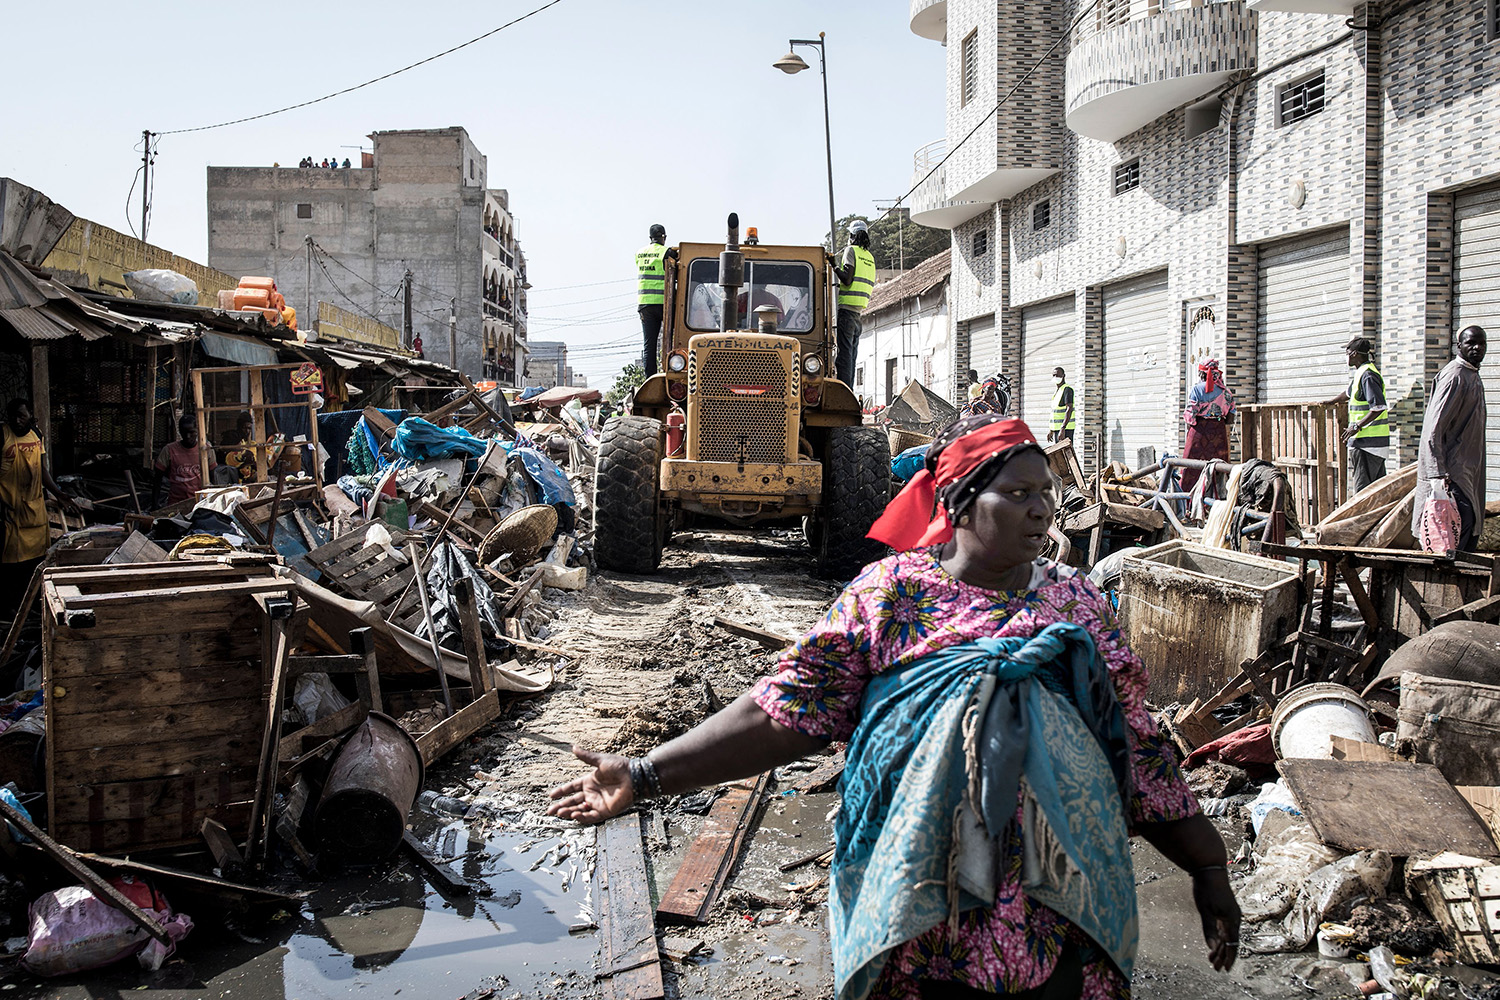 A woman protests as a bulldozer clears out stalls in an informal market ahead of disinfecting the Medina neighborhood of Dakar, Senegal, on March 22. JOHN WESSELS/AFP via Getty Images